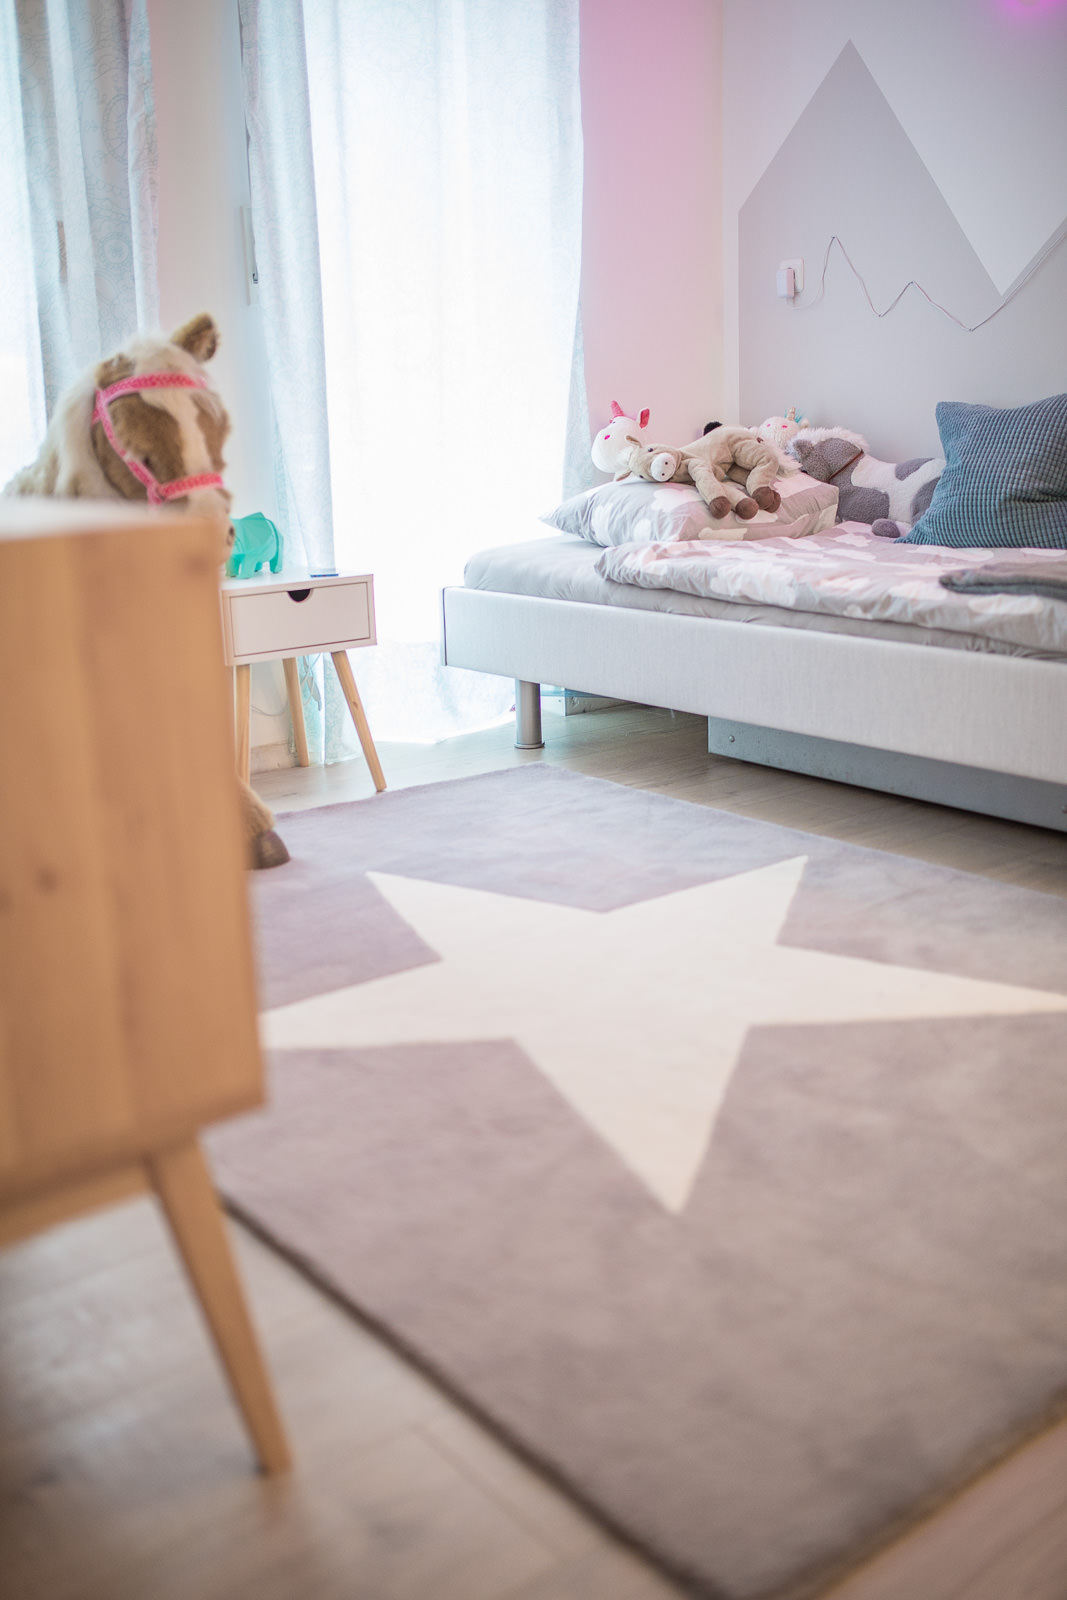 nena s kinderzimmer ist fertig wollt ihr mal sehen. Black Bedroom Furniture Sets. Home Design Ideas